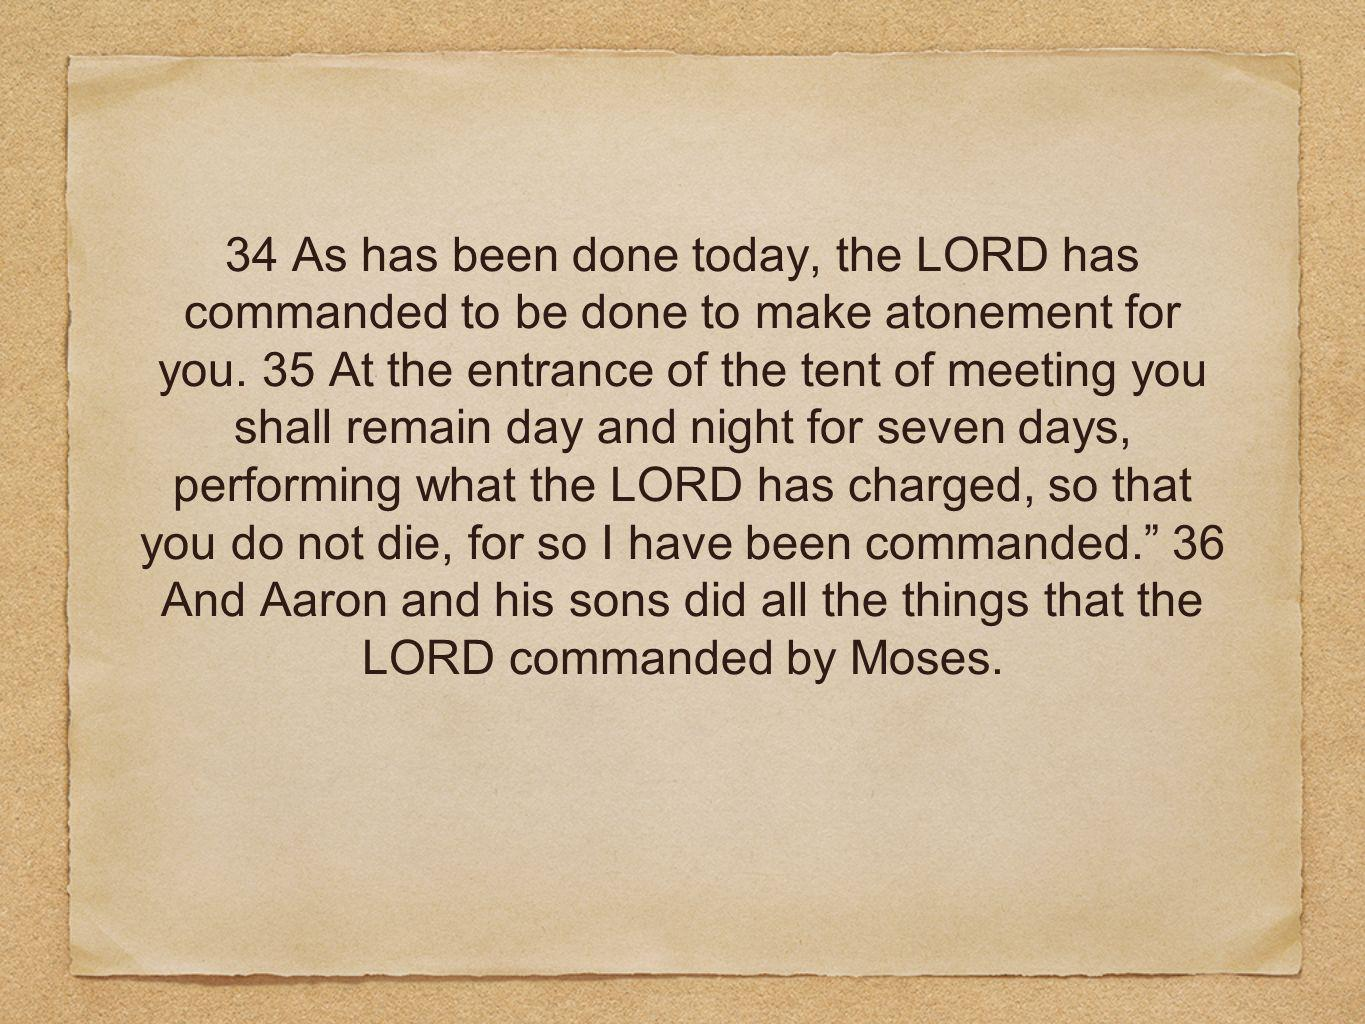 34 As has been done today, the LORD has commanded to be done to make atonement for you. 35 At the entrance of the tent of meeting you shall remain day